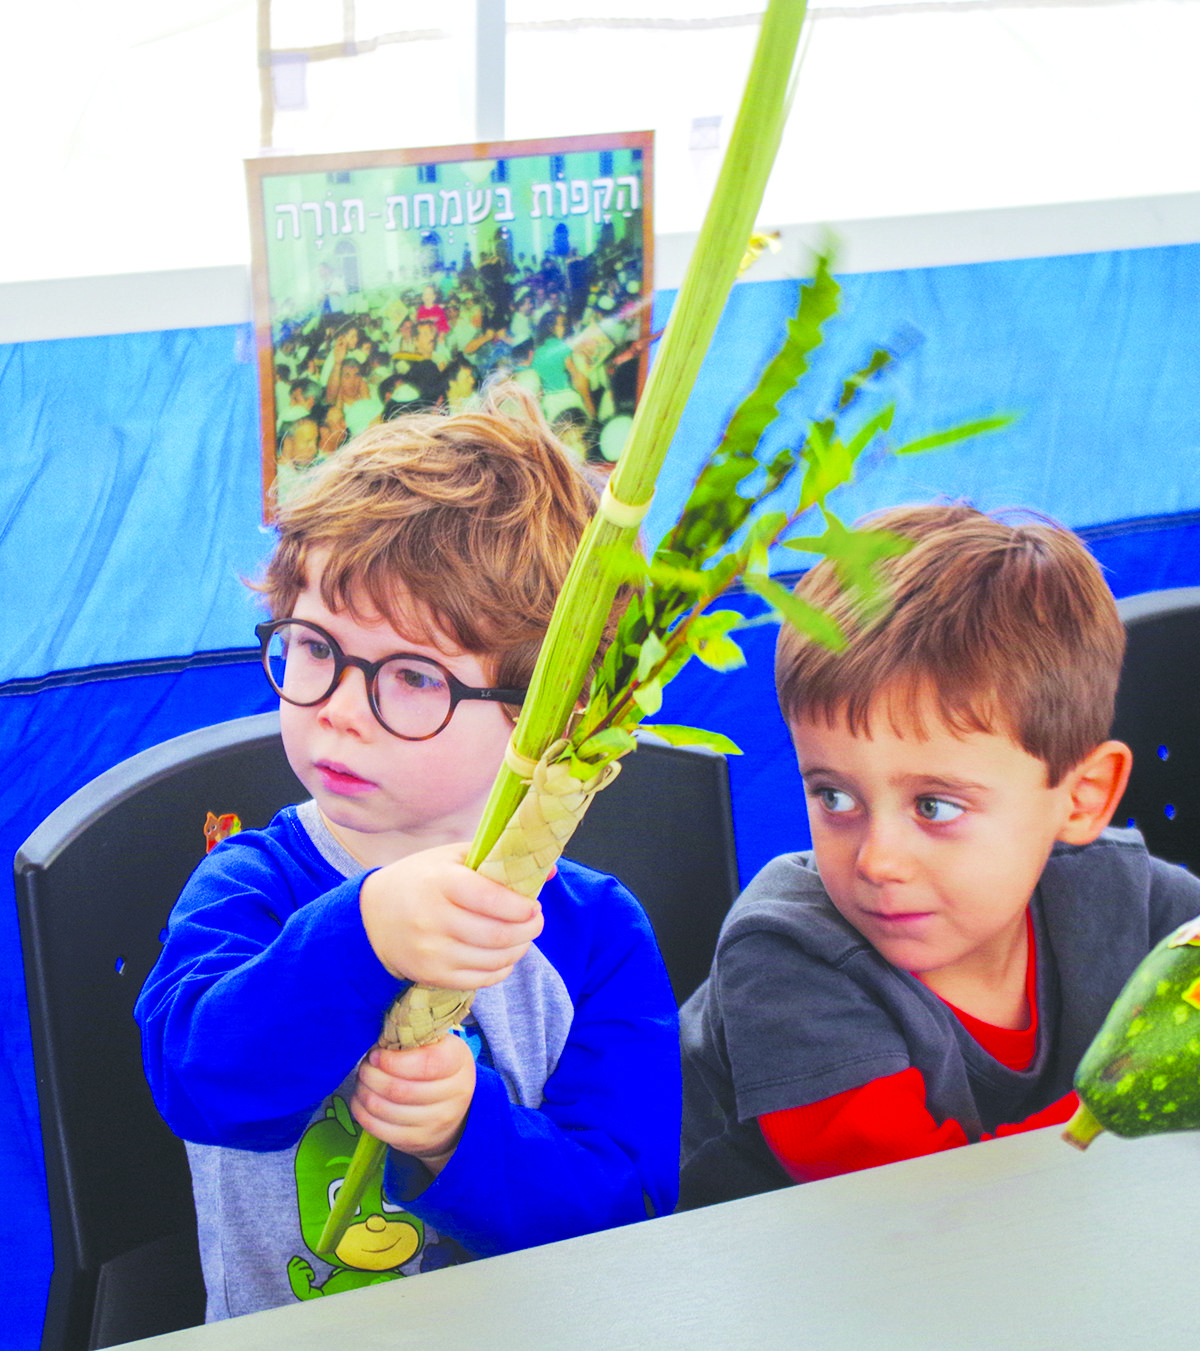 Children from the David C. Isenberg Family Early Childhood Center at the JCC visited the sukkah to shake the lulav.